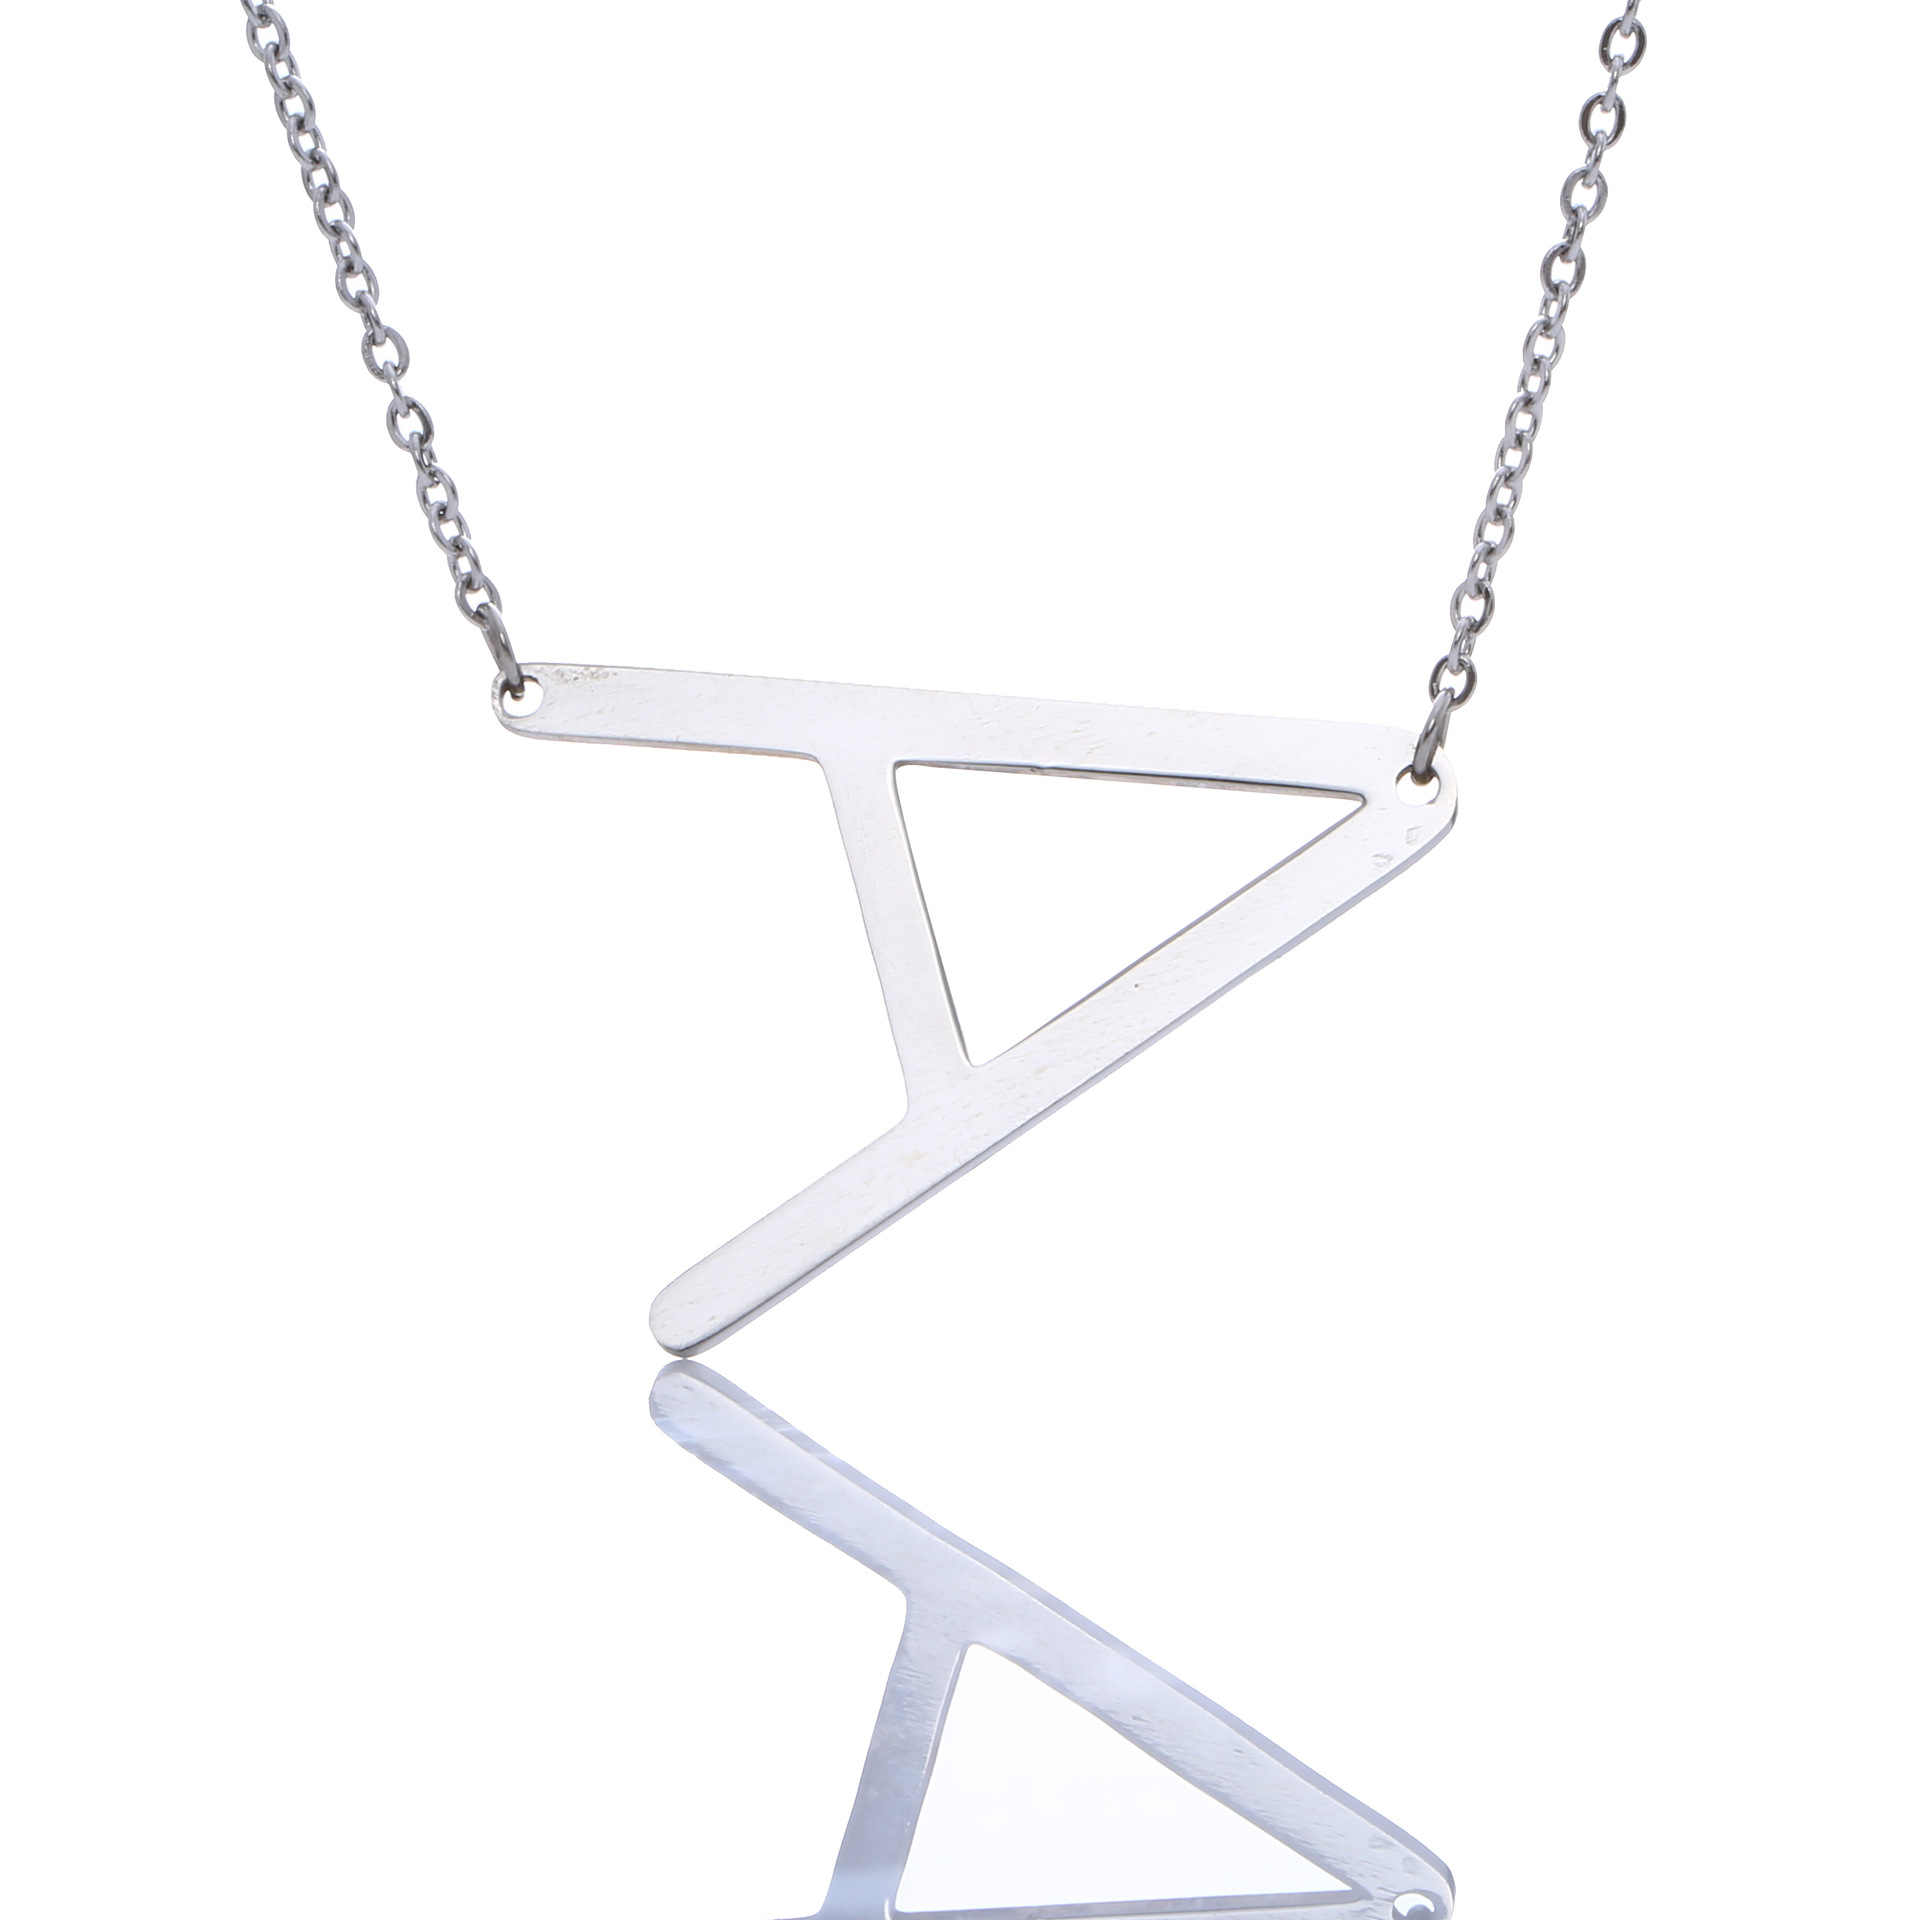 Hot Sale Silver Steel Necklace 26 English Letters 925 Sterling Silver Pendants For Women Fashion Jewelry